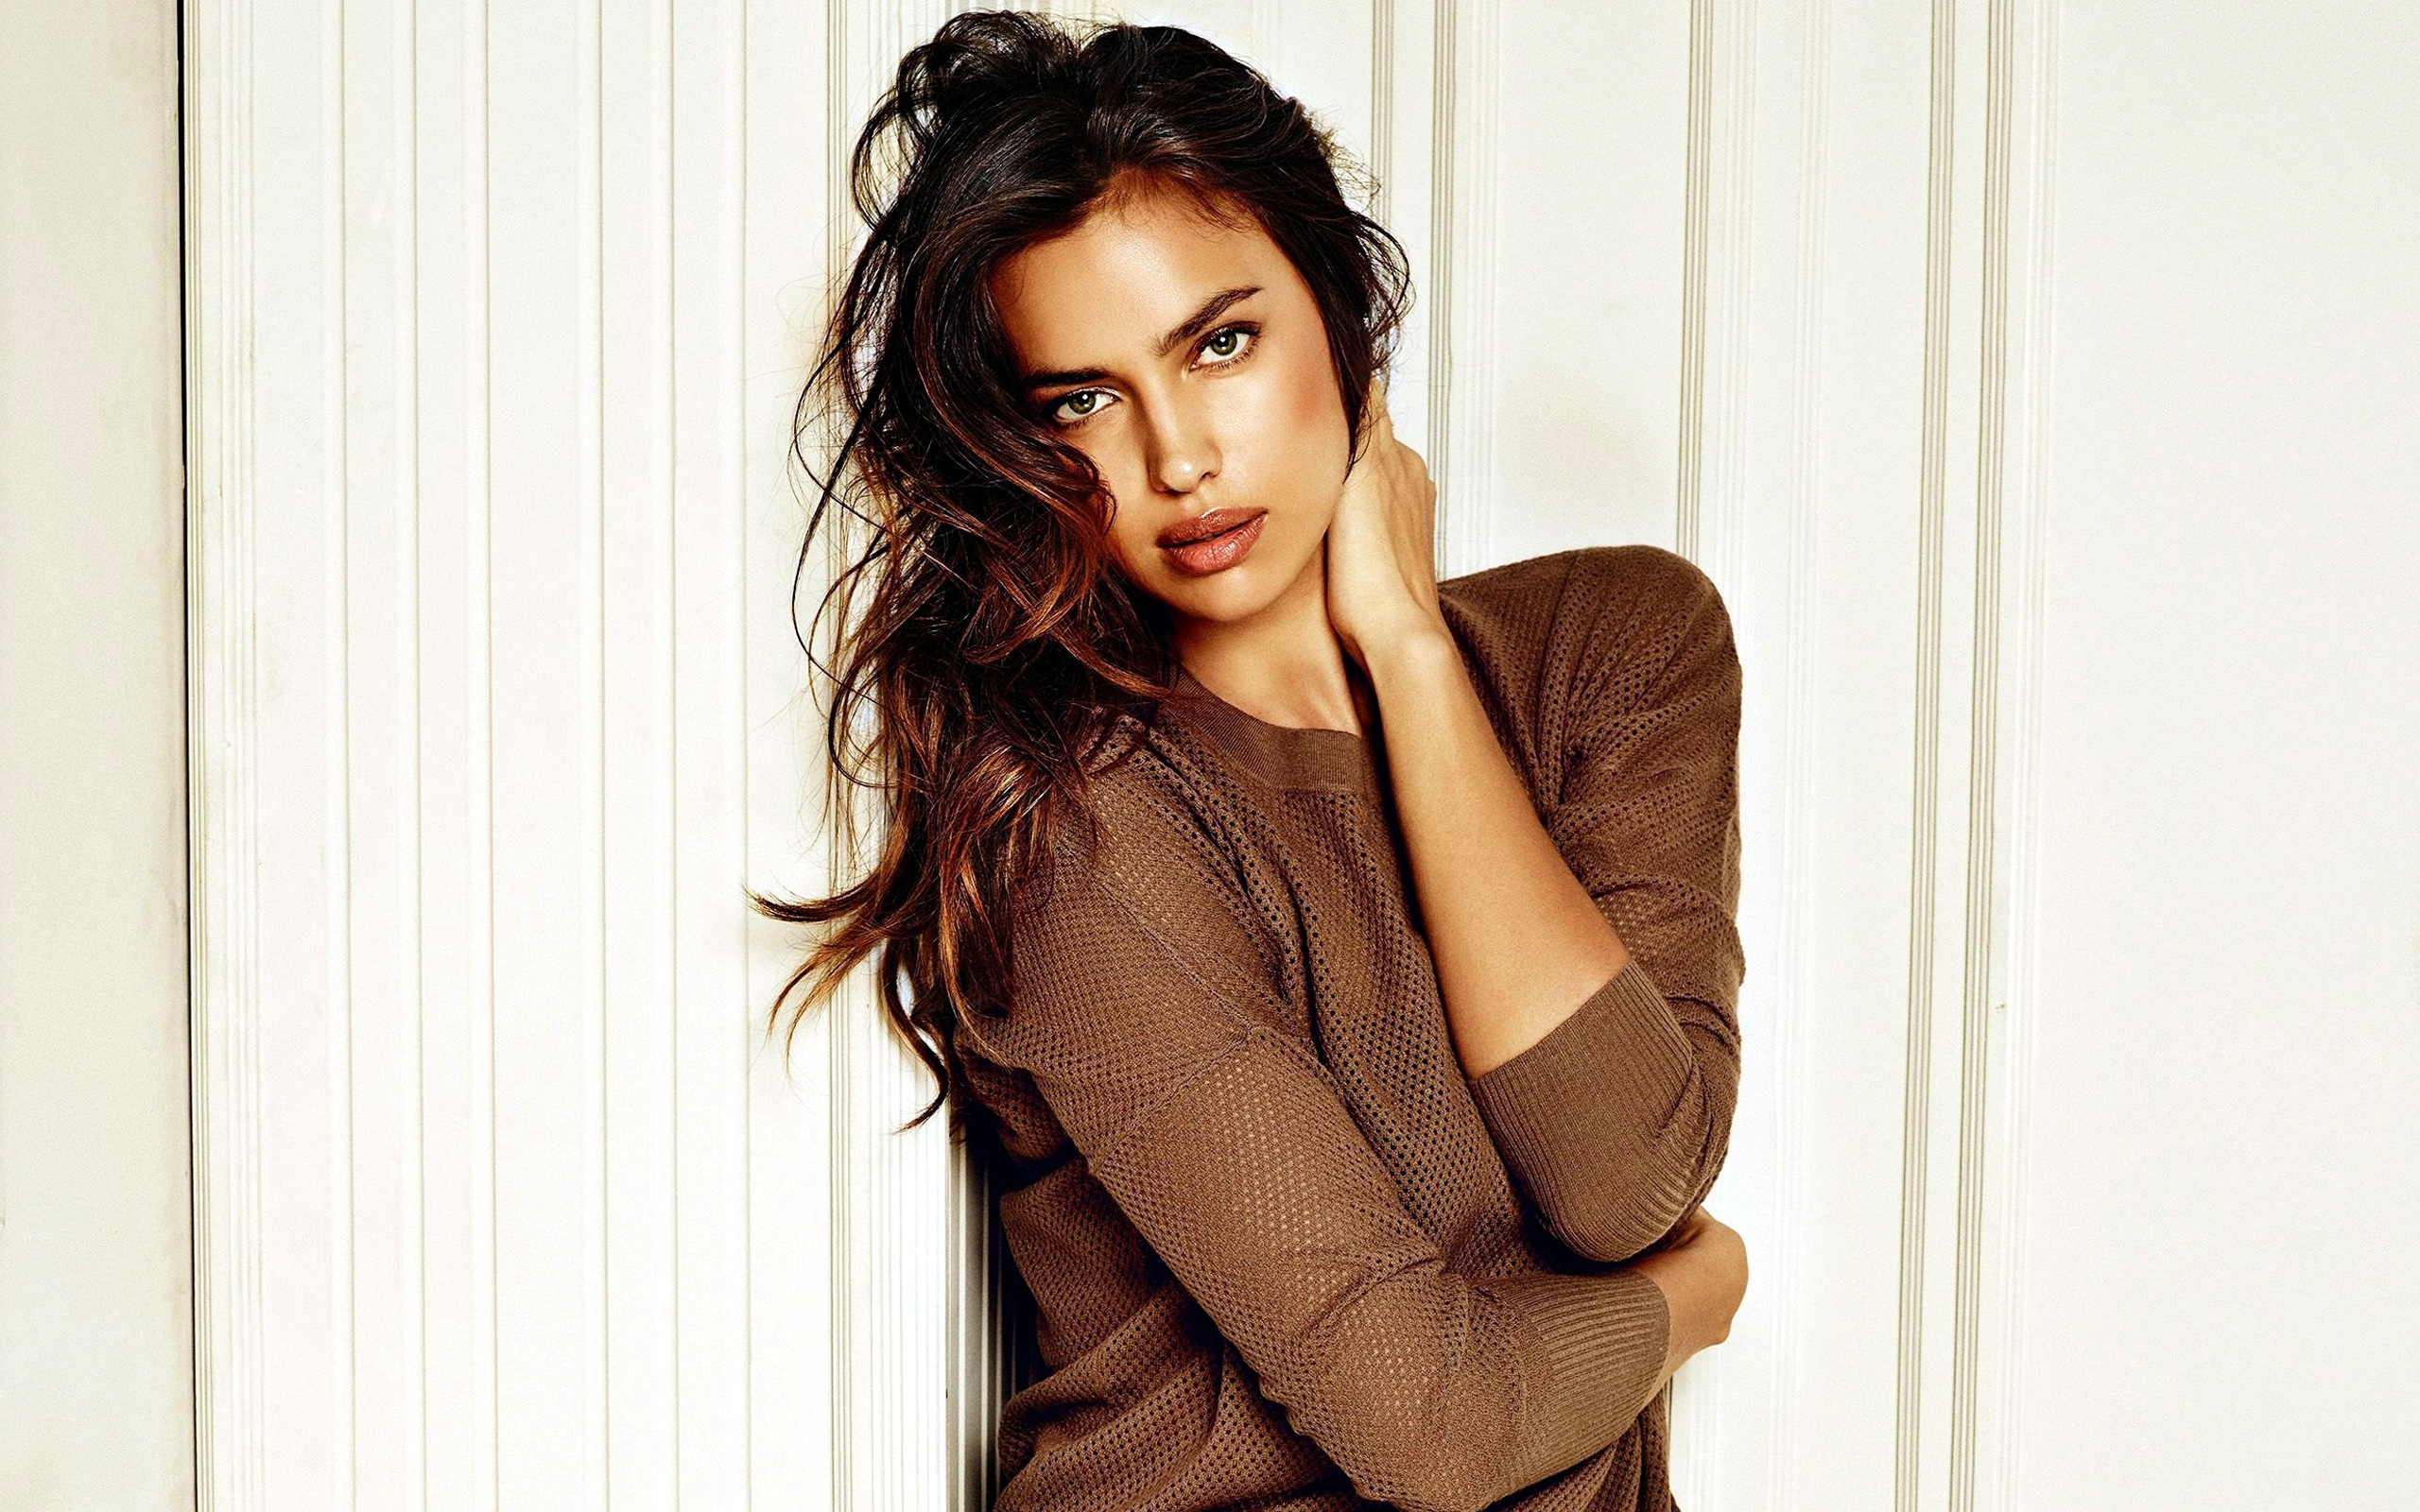 Irina Shayk 15 wallpaper